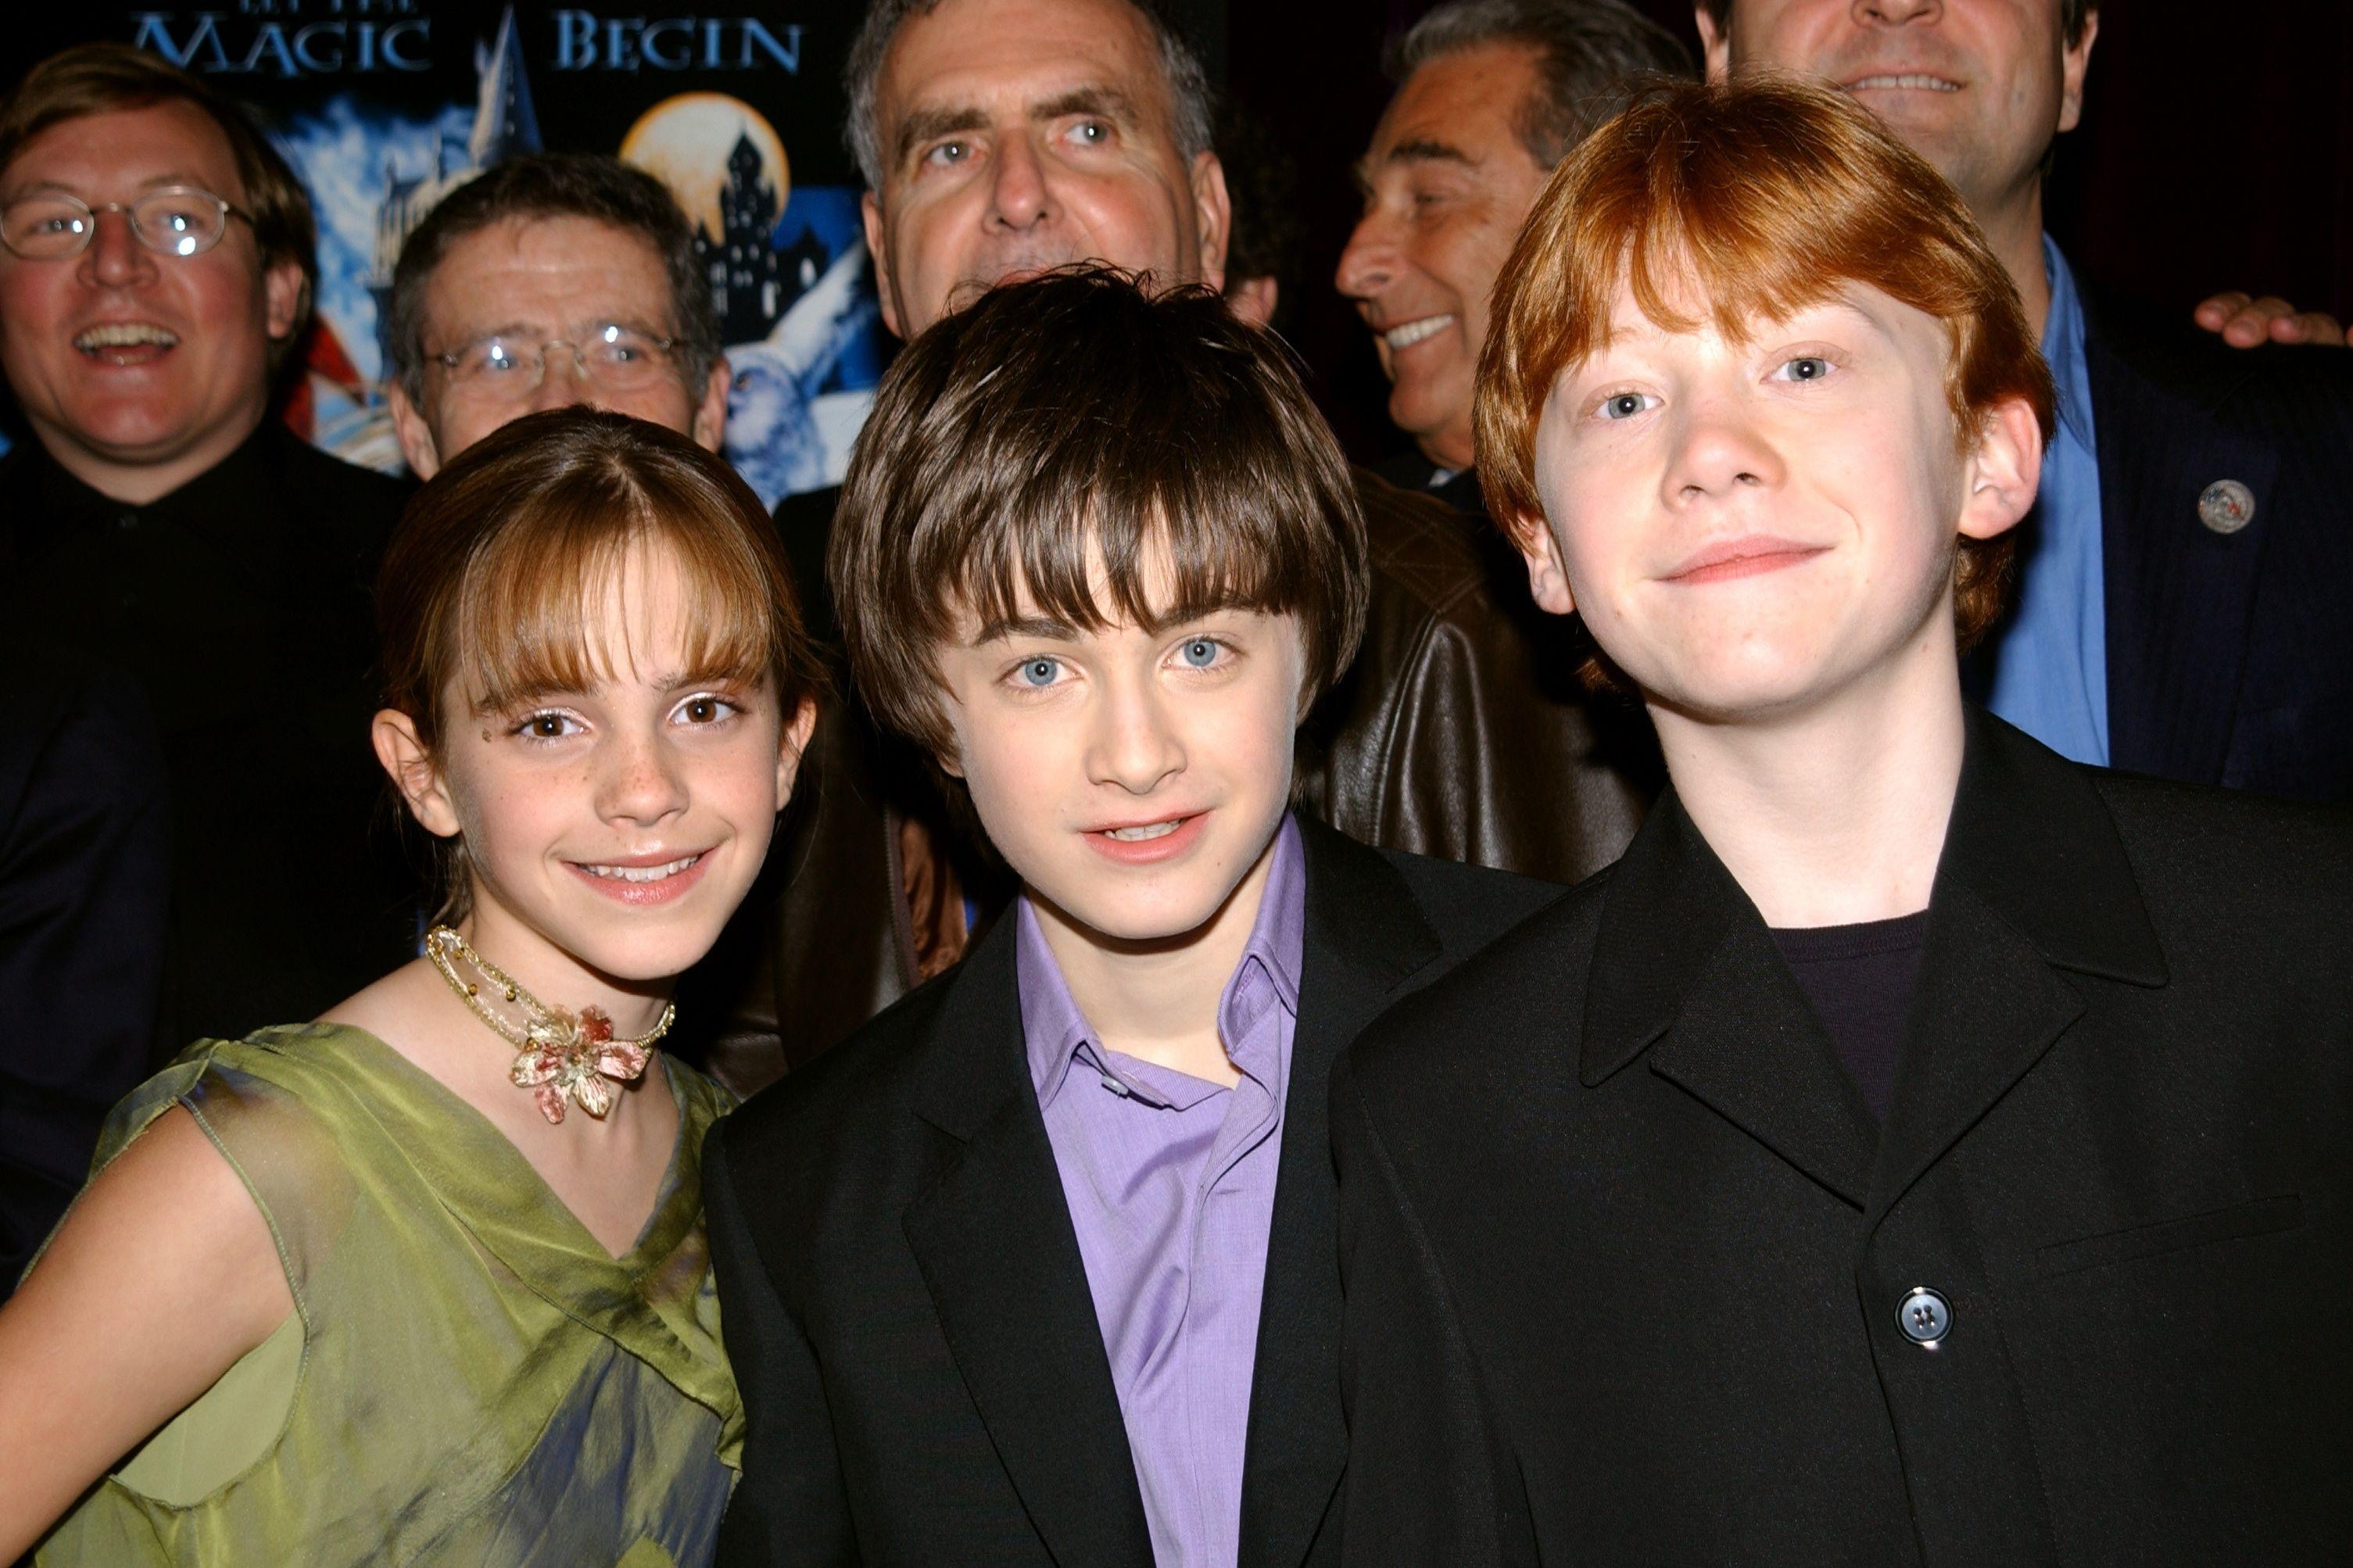 Books Vs Movies: How The Harry Potter Cast Should Have Looked